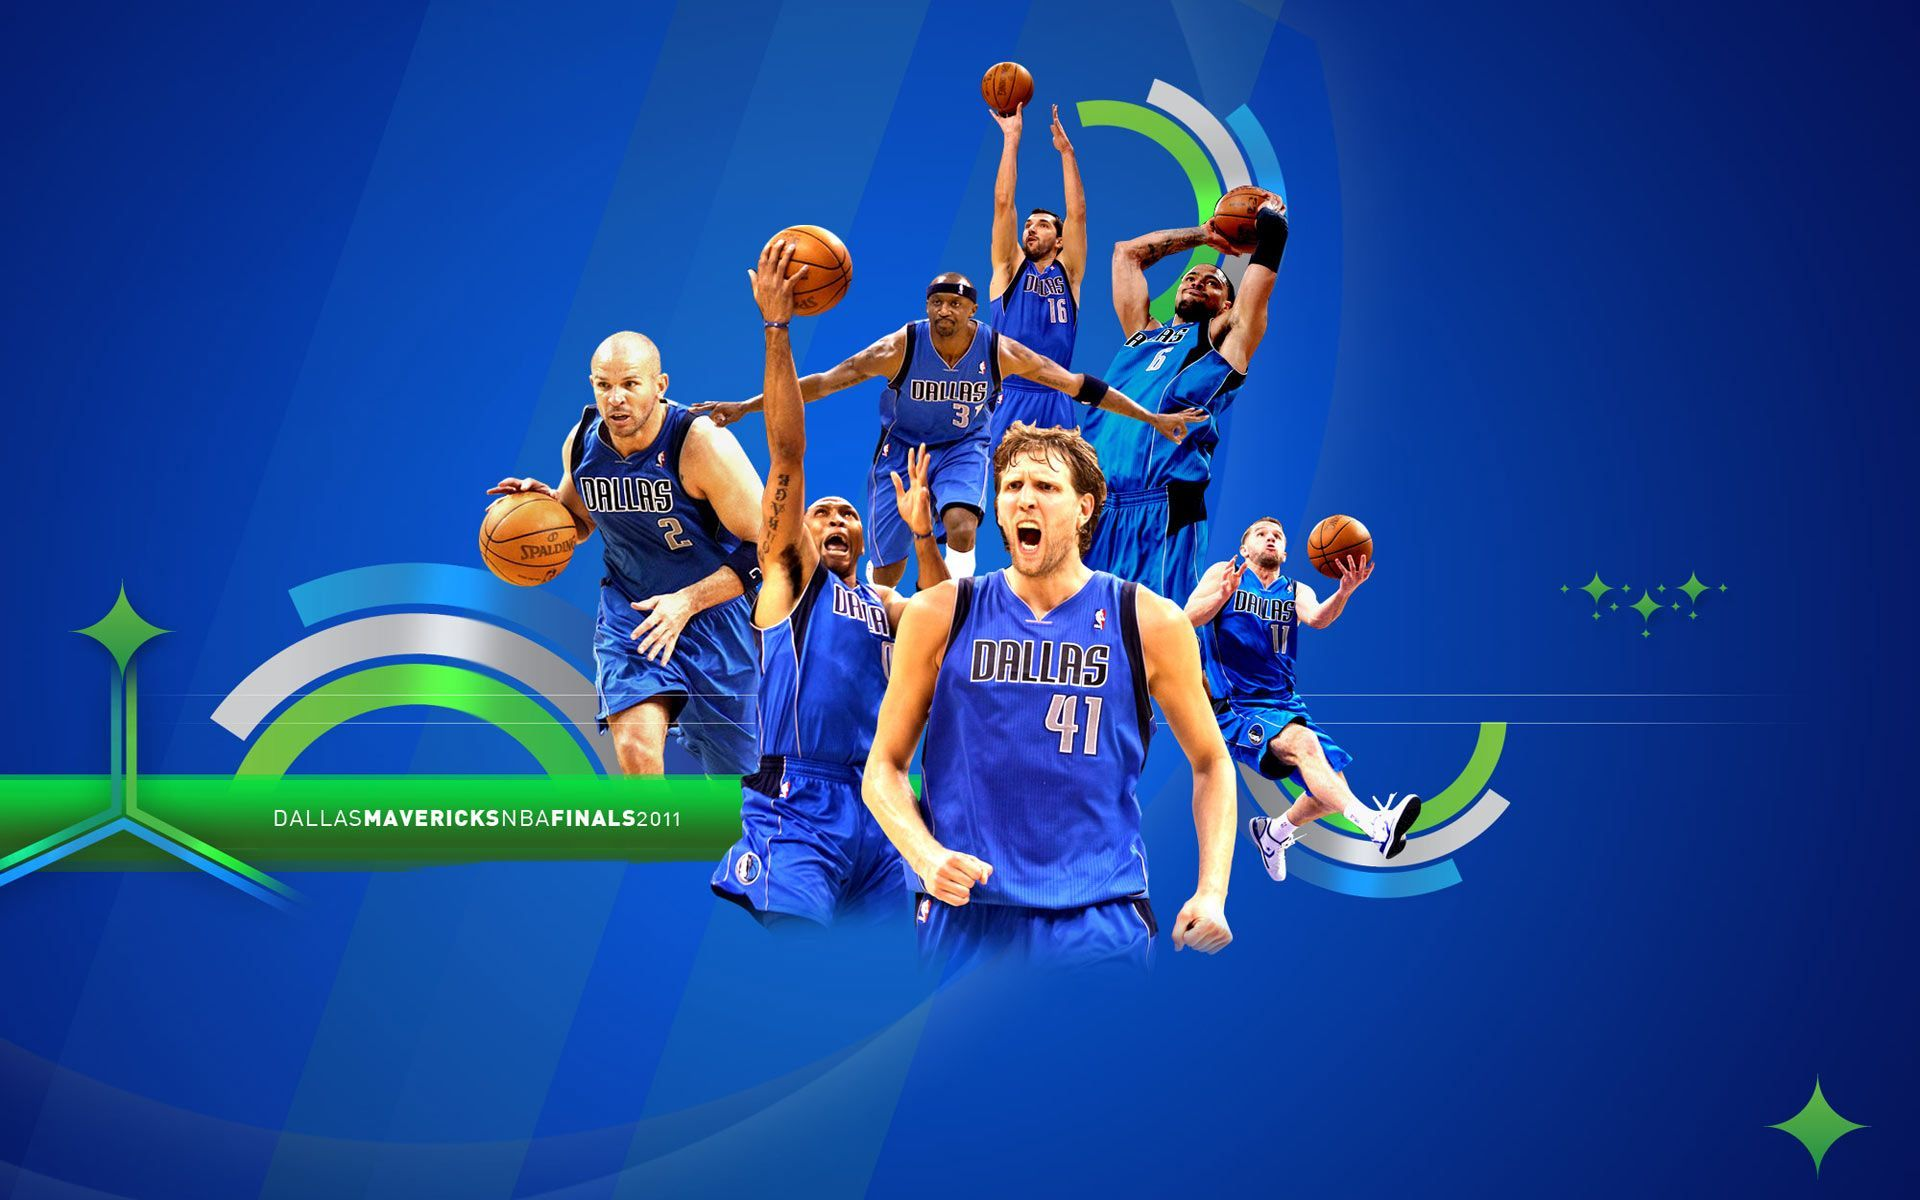 Dallas Mavericks Wallpapers Basketball At